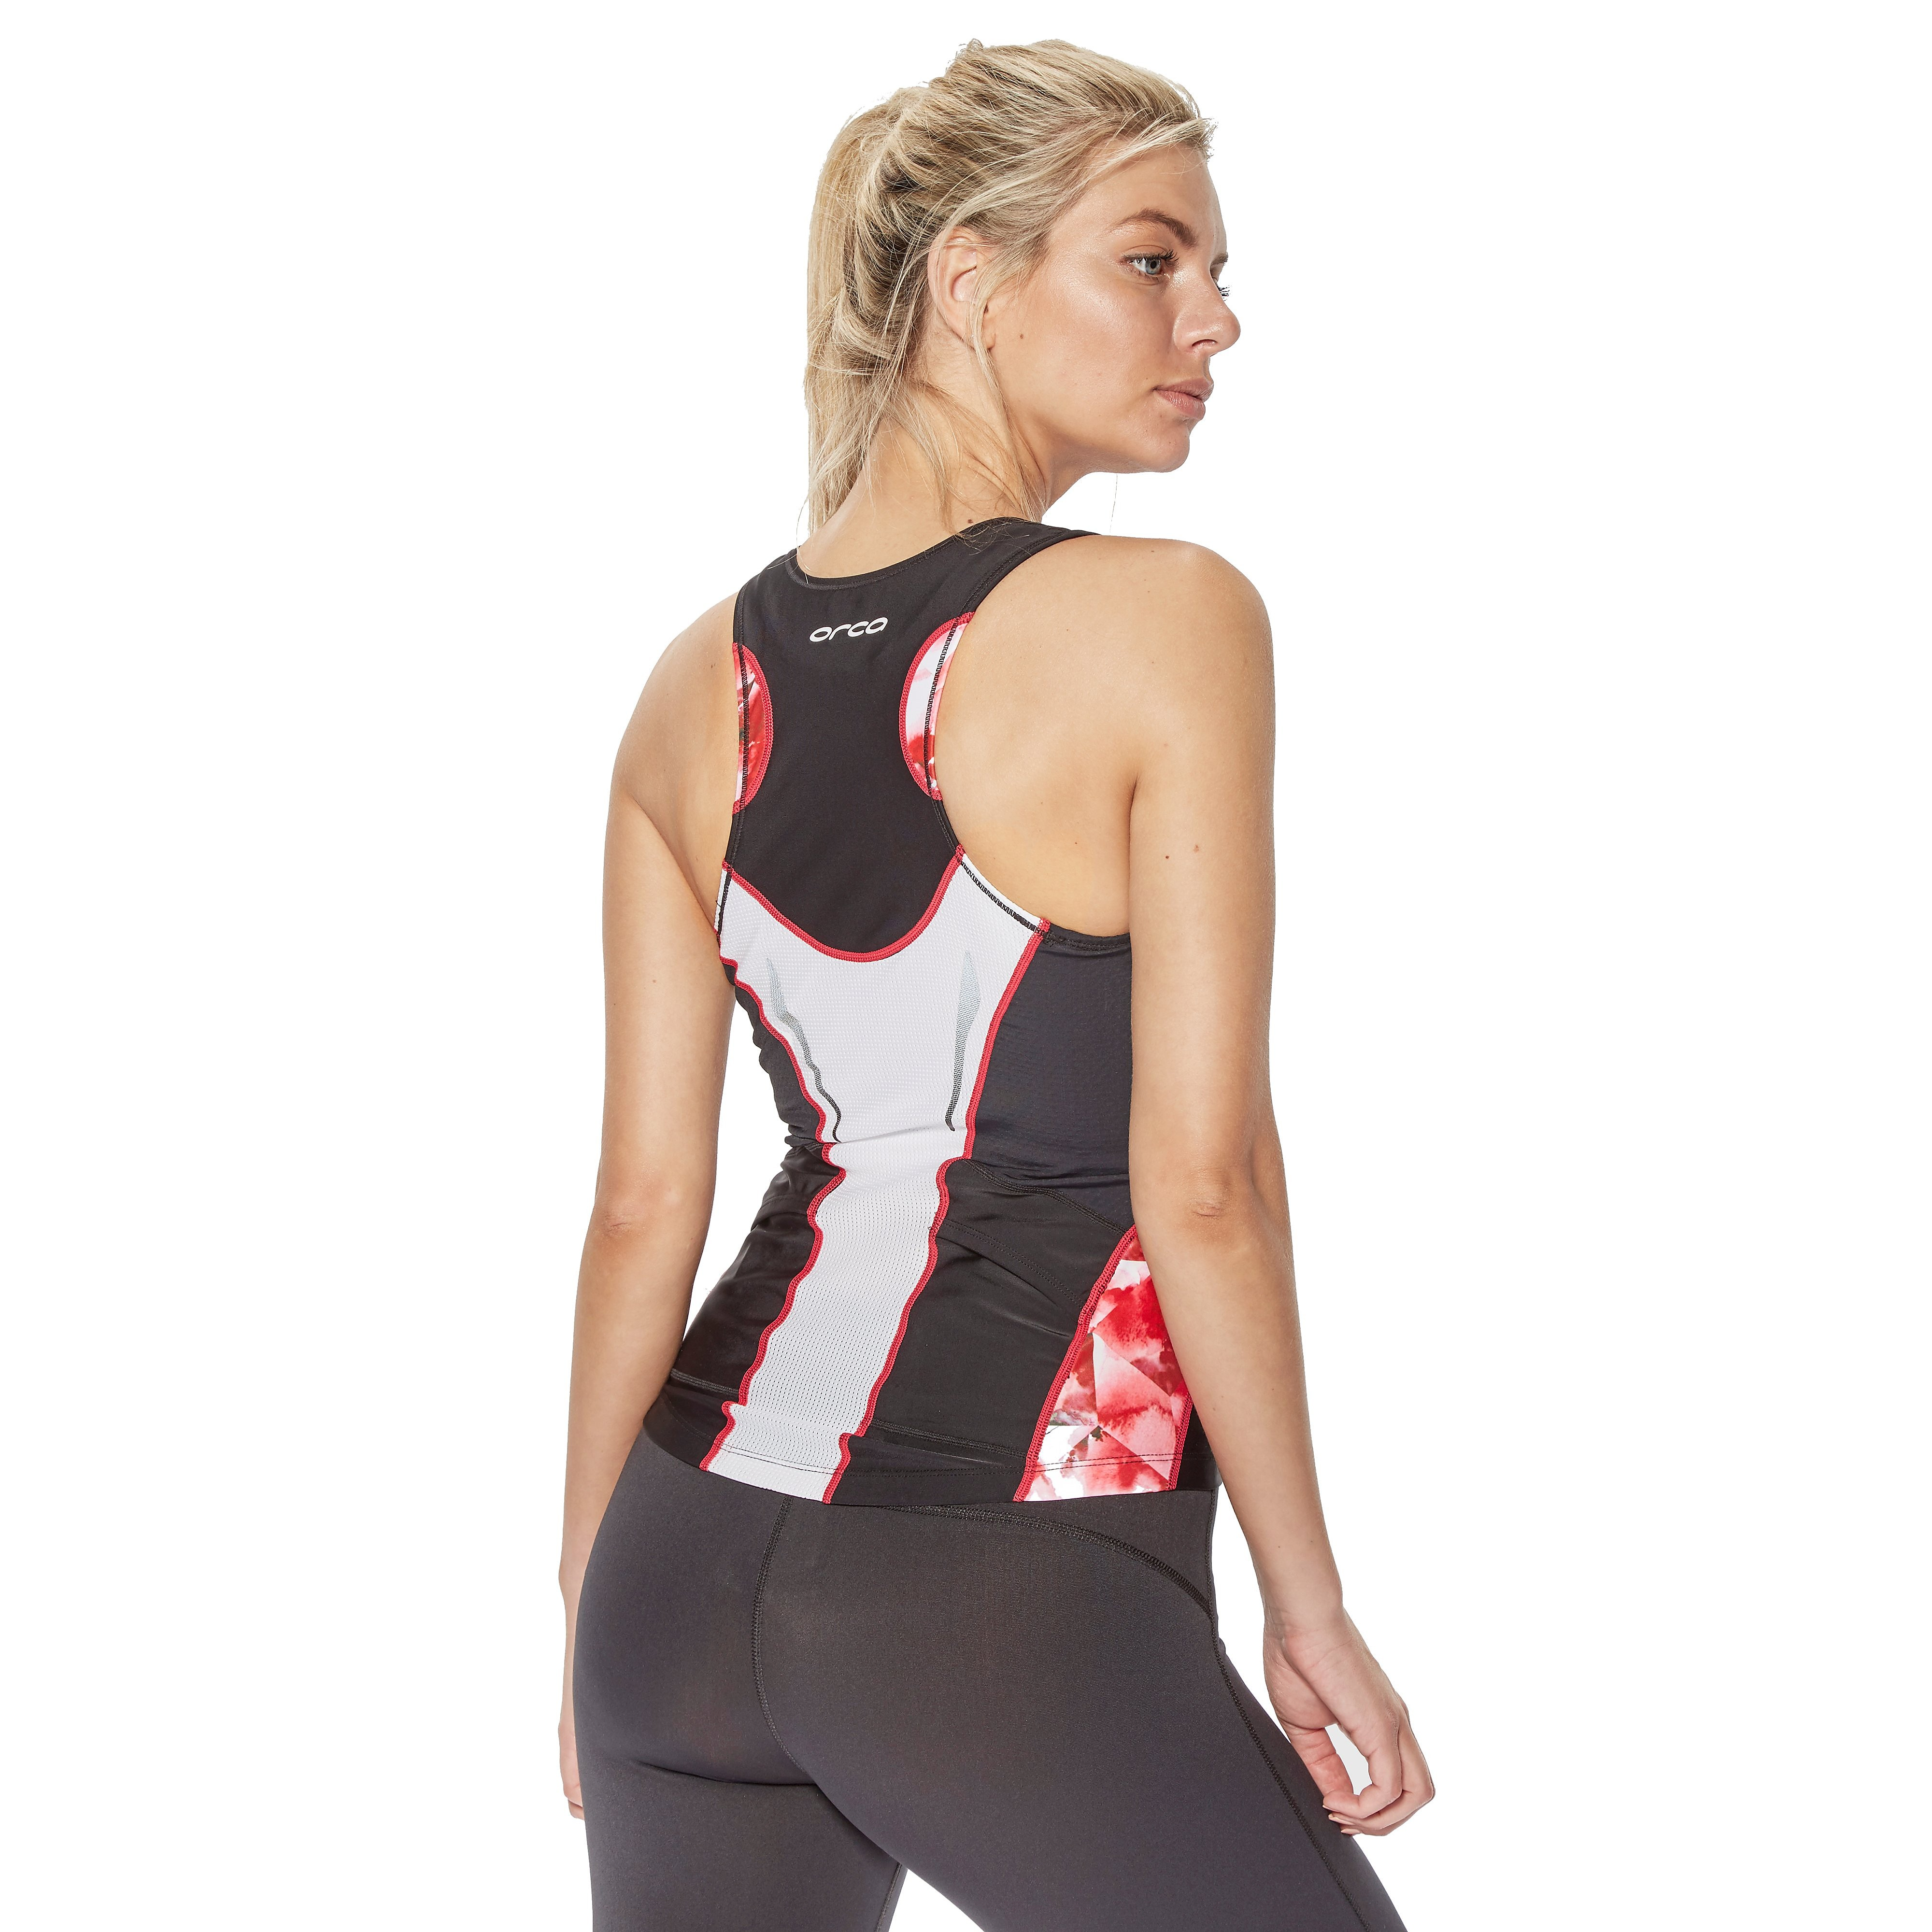 Orca Core Women's Tri Support Singlet